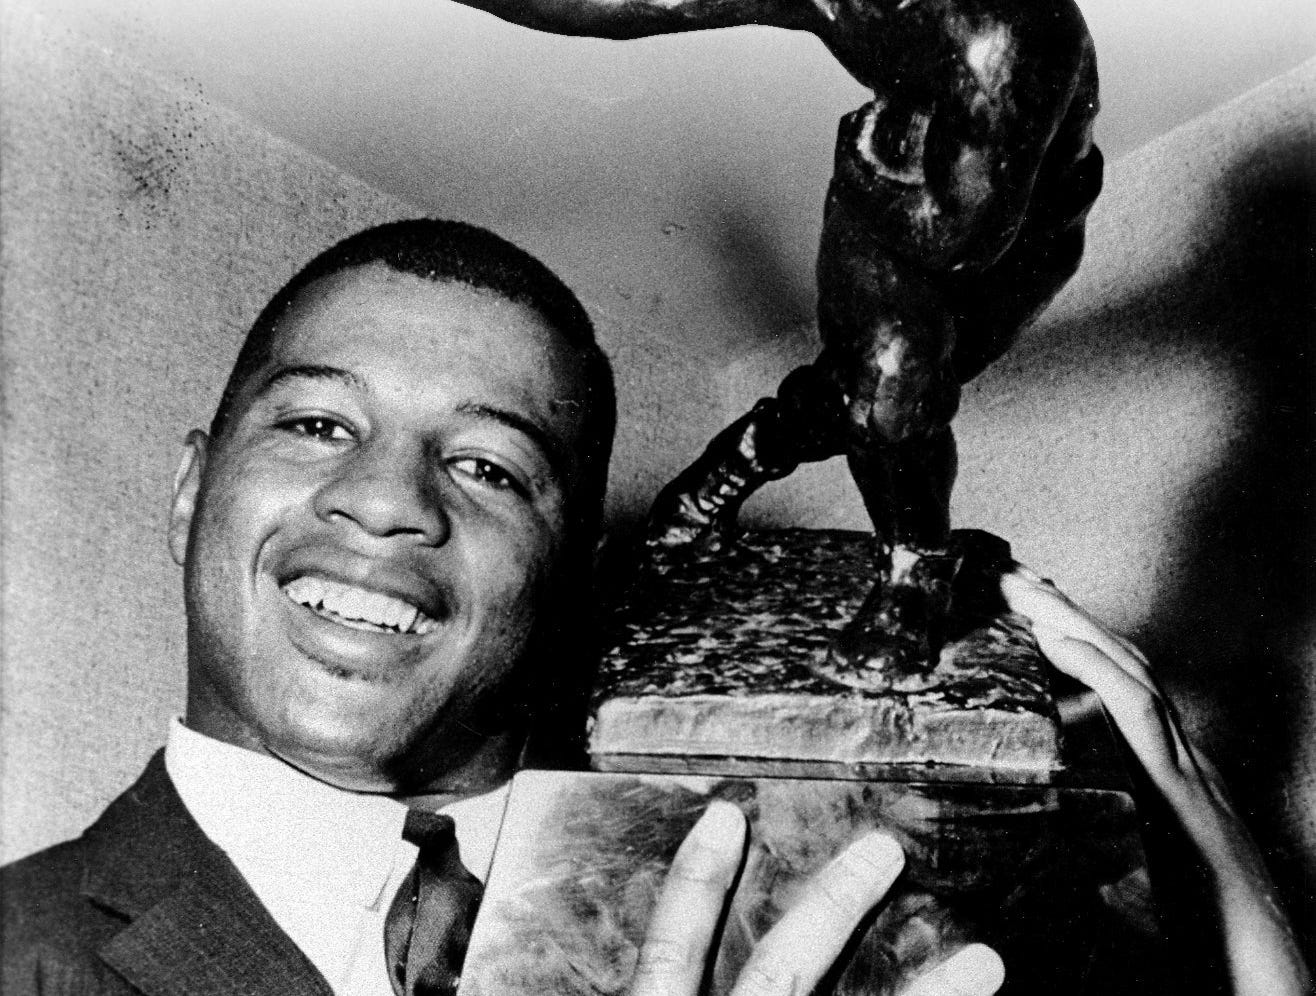 On Nov. 28, 1961, Ernie Davis of Syracuse University became the first African-American to be named winner of the Heisman Trophy. Davis grew up in Elmira.